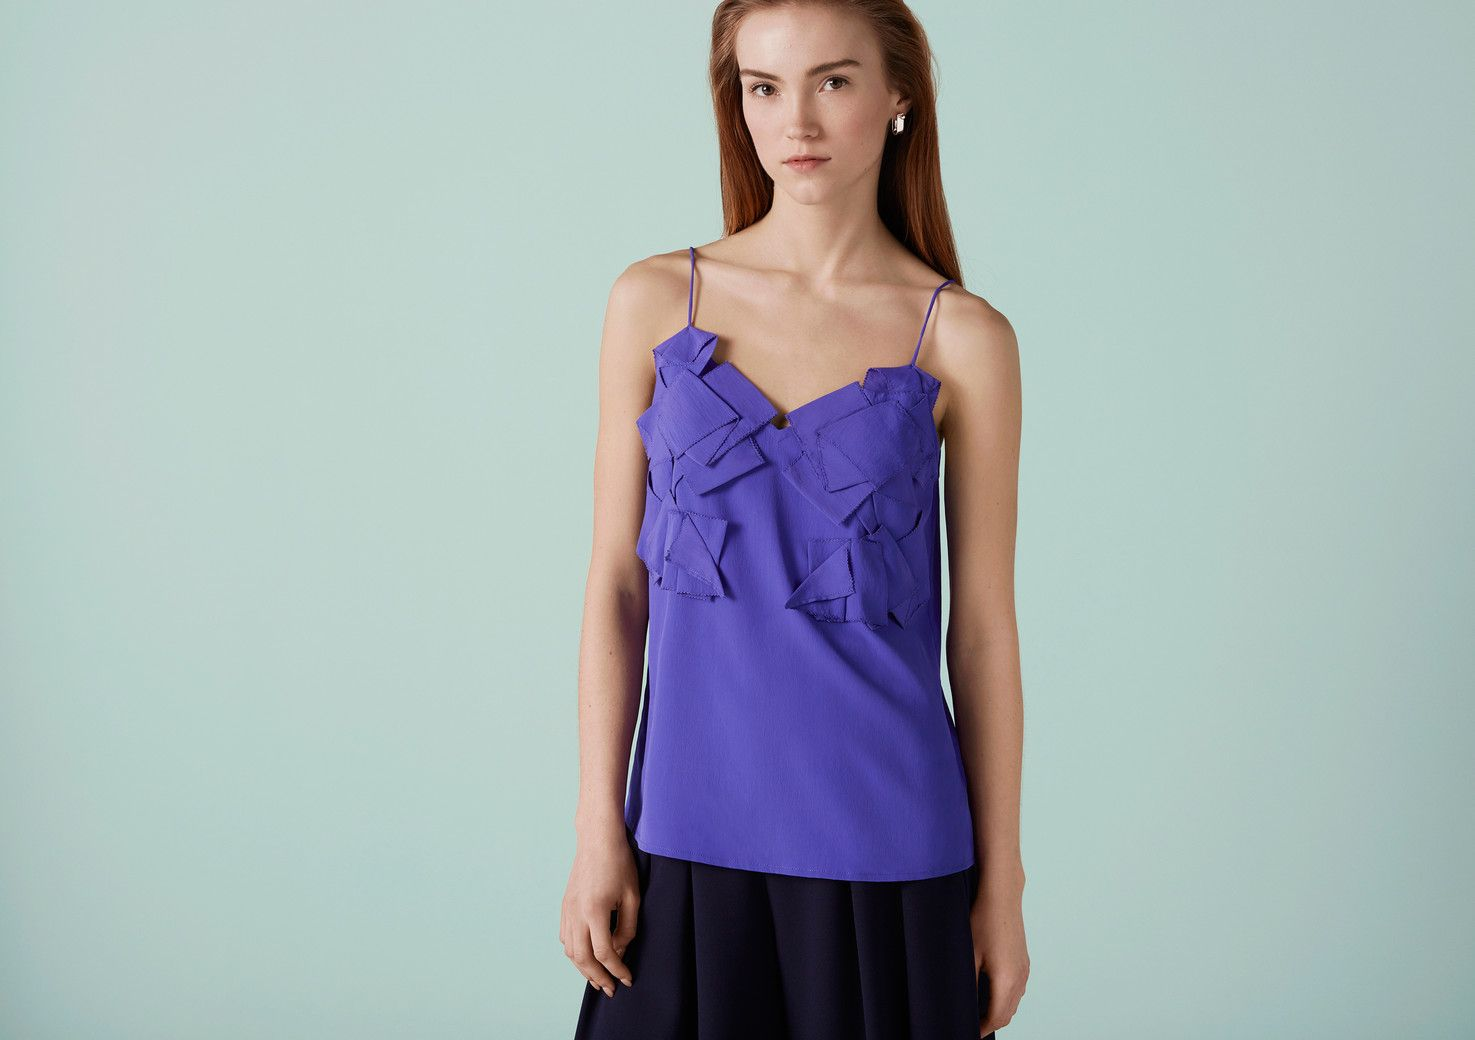 Discover The Maida Origami Cami On Finery London Tops Designed In Available Navy